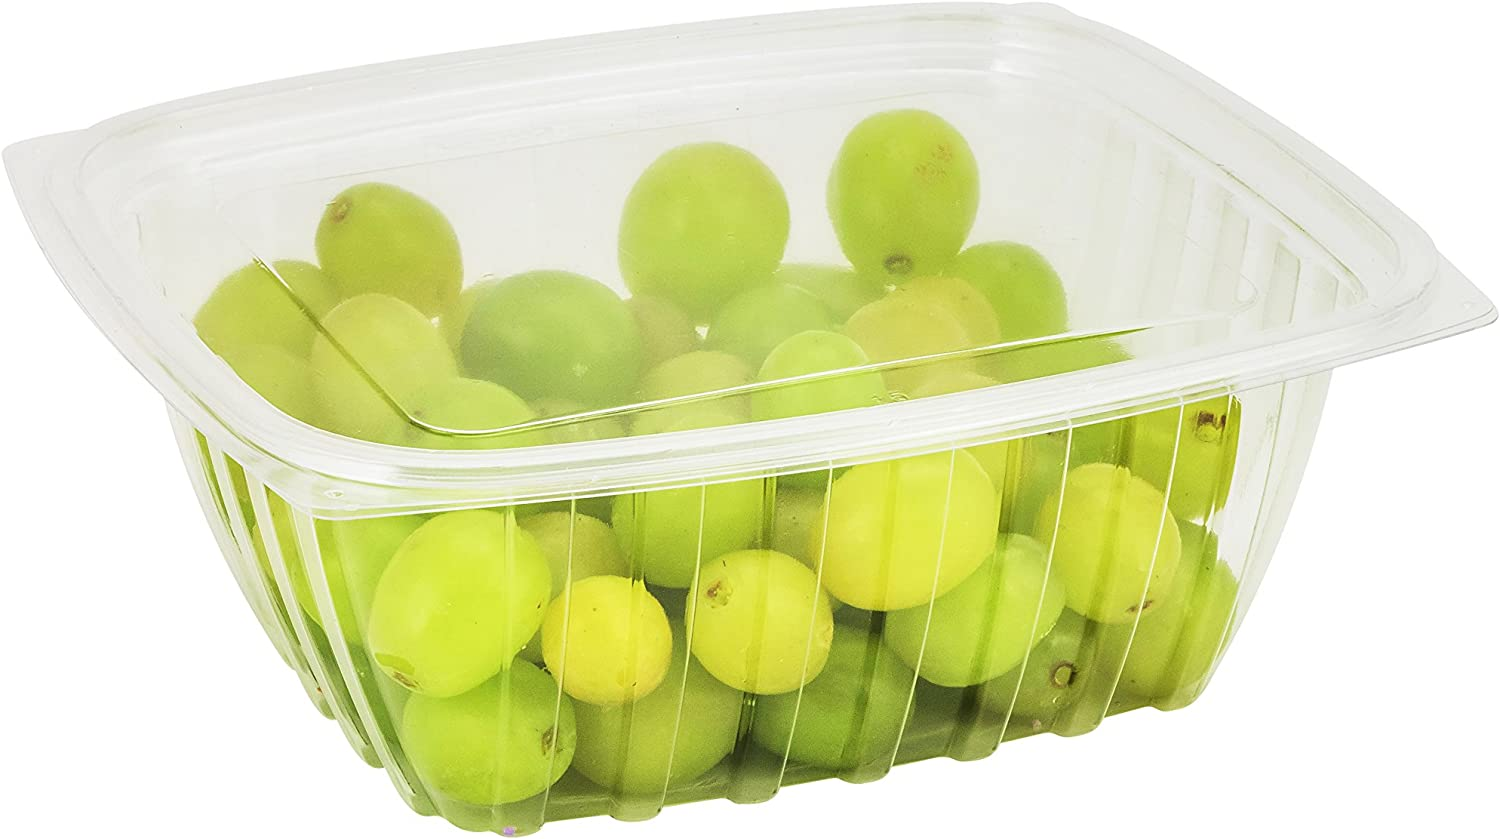 Dart C64DER, 64-Ounce ClearPac Clear Rectangular Plastic Container With Clear Flat Lid, Take Out Salad Deli Fruit Food Disposable Containers (50)